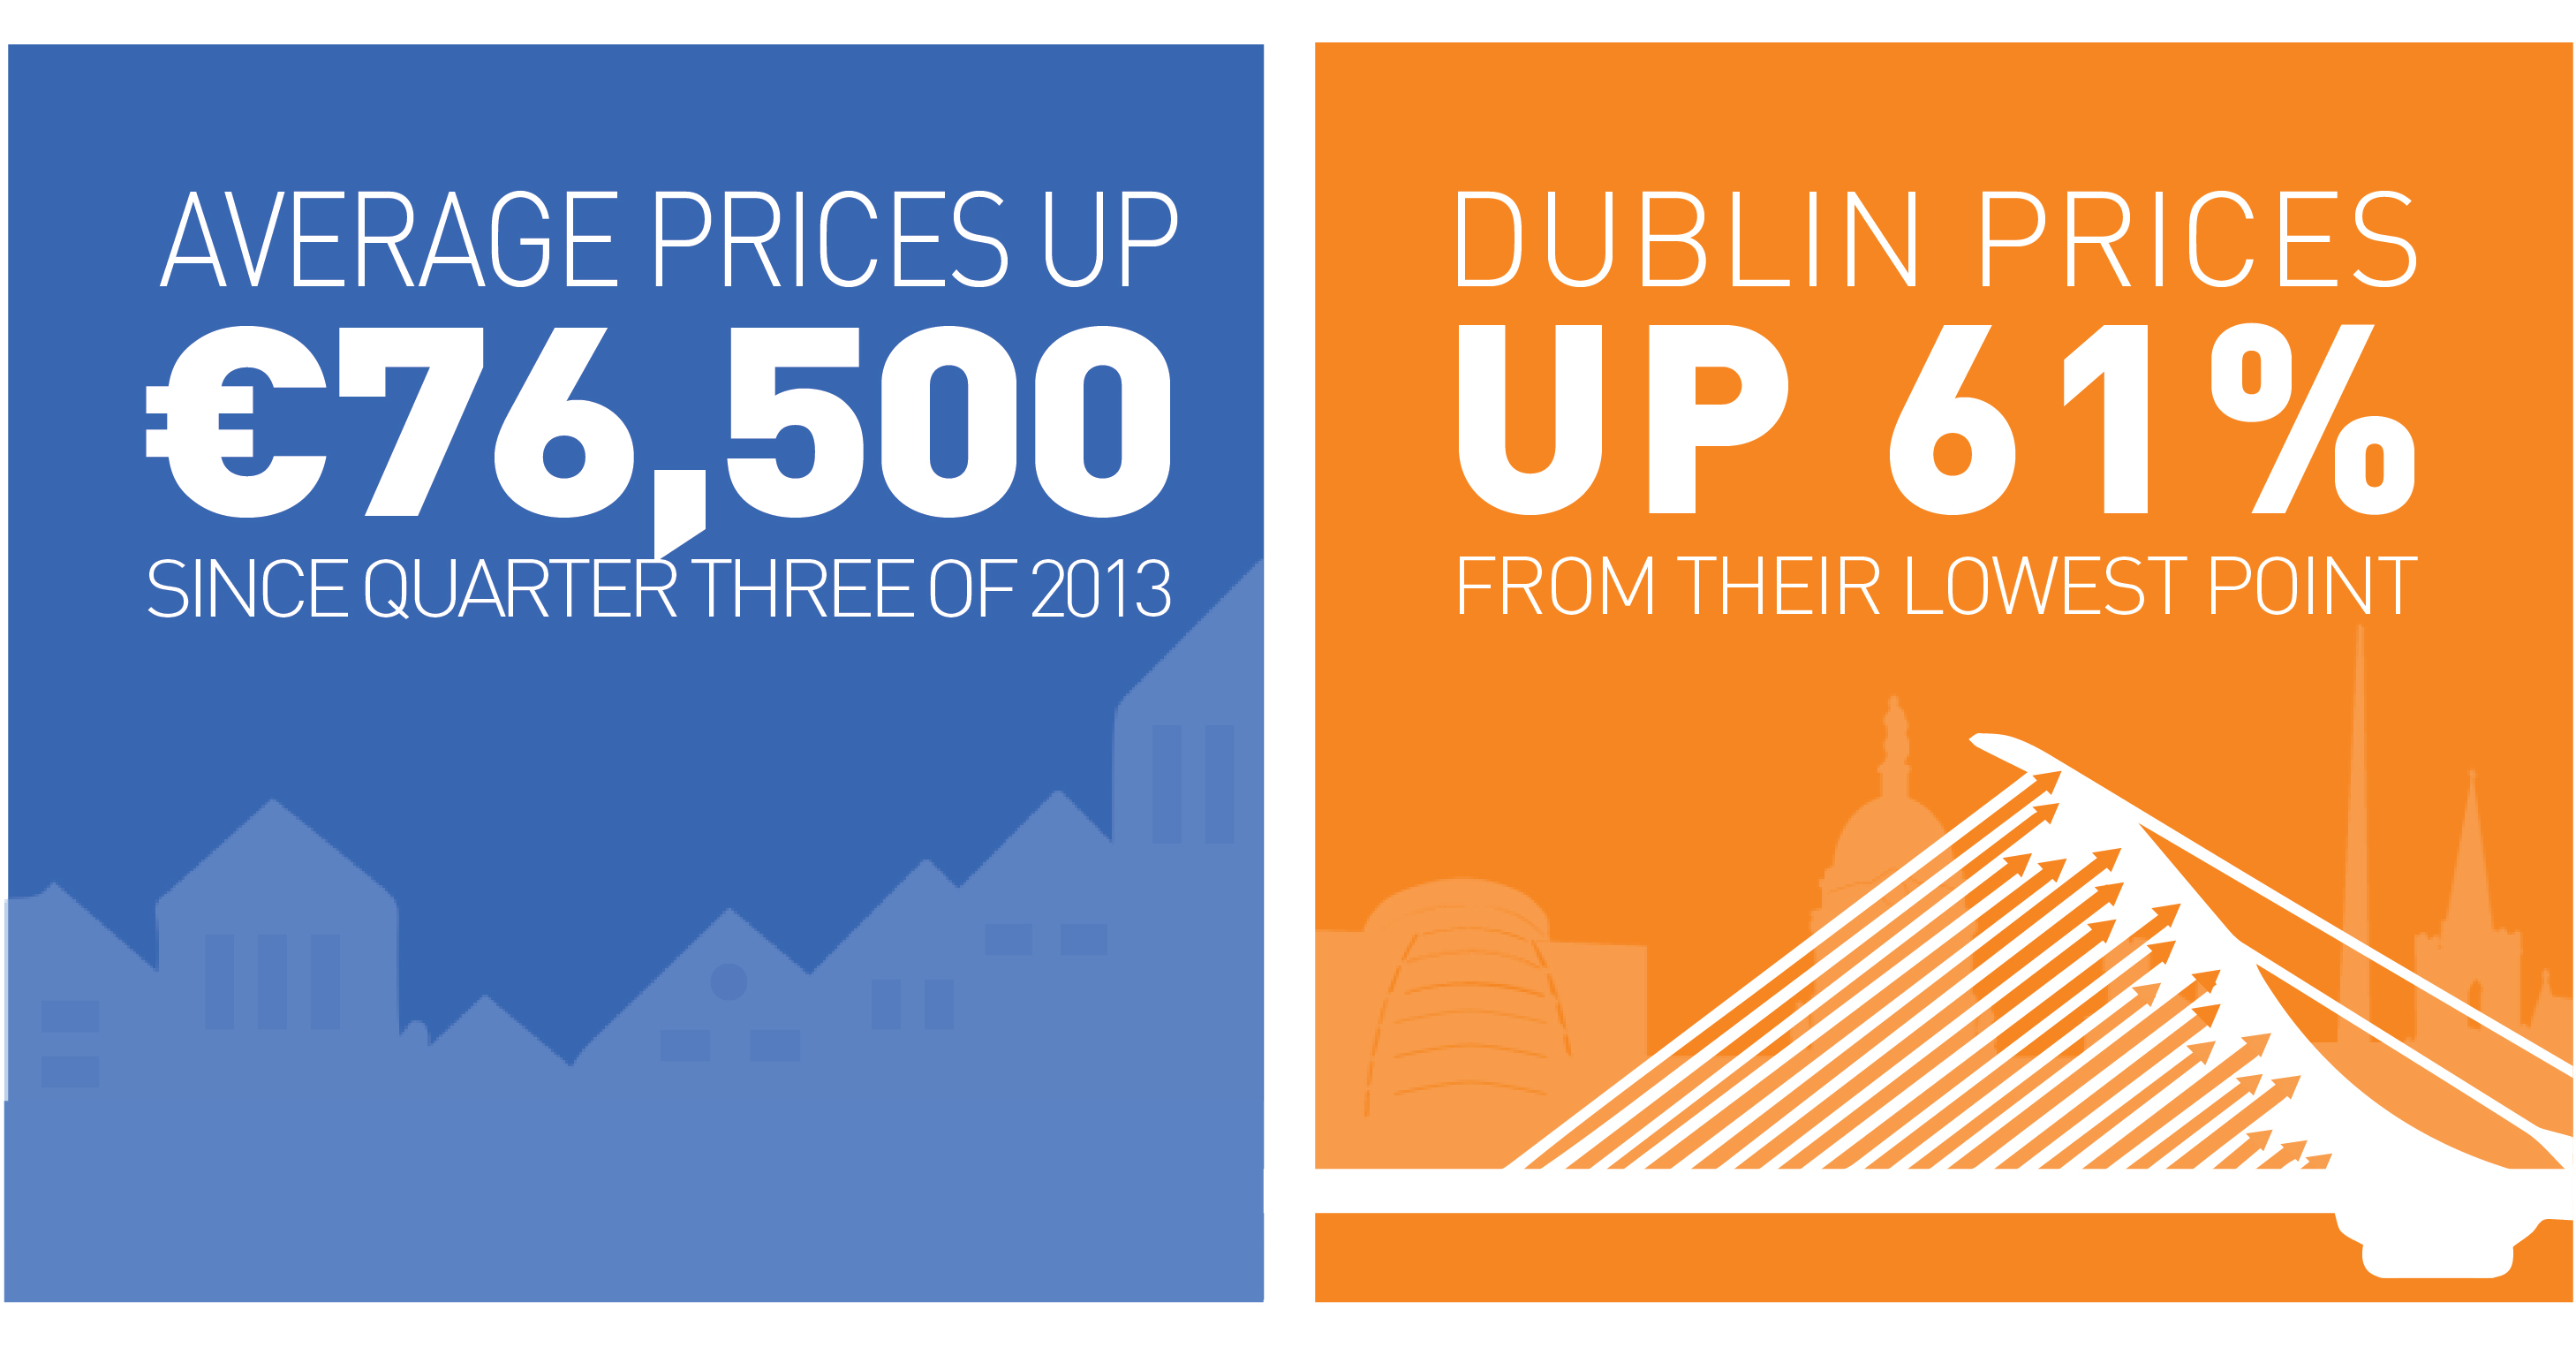 Average prices up €76,500 since quarter three of 2013